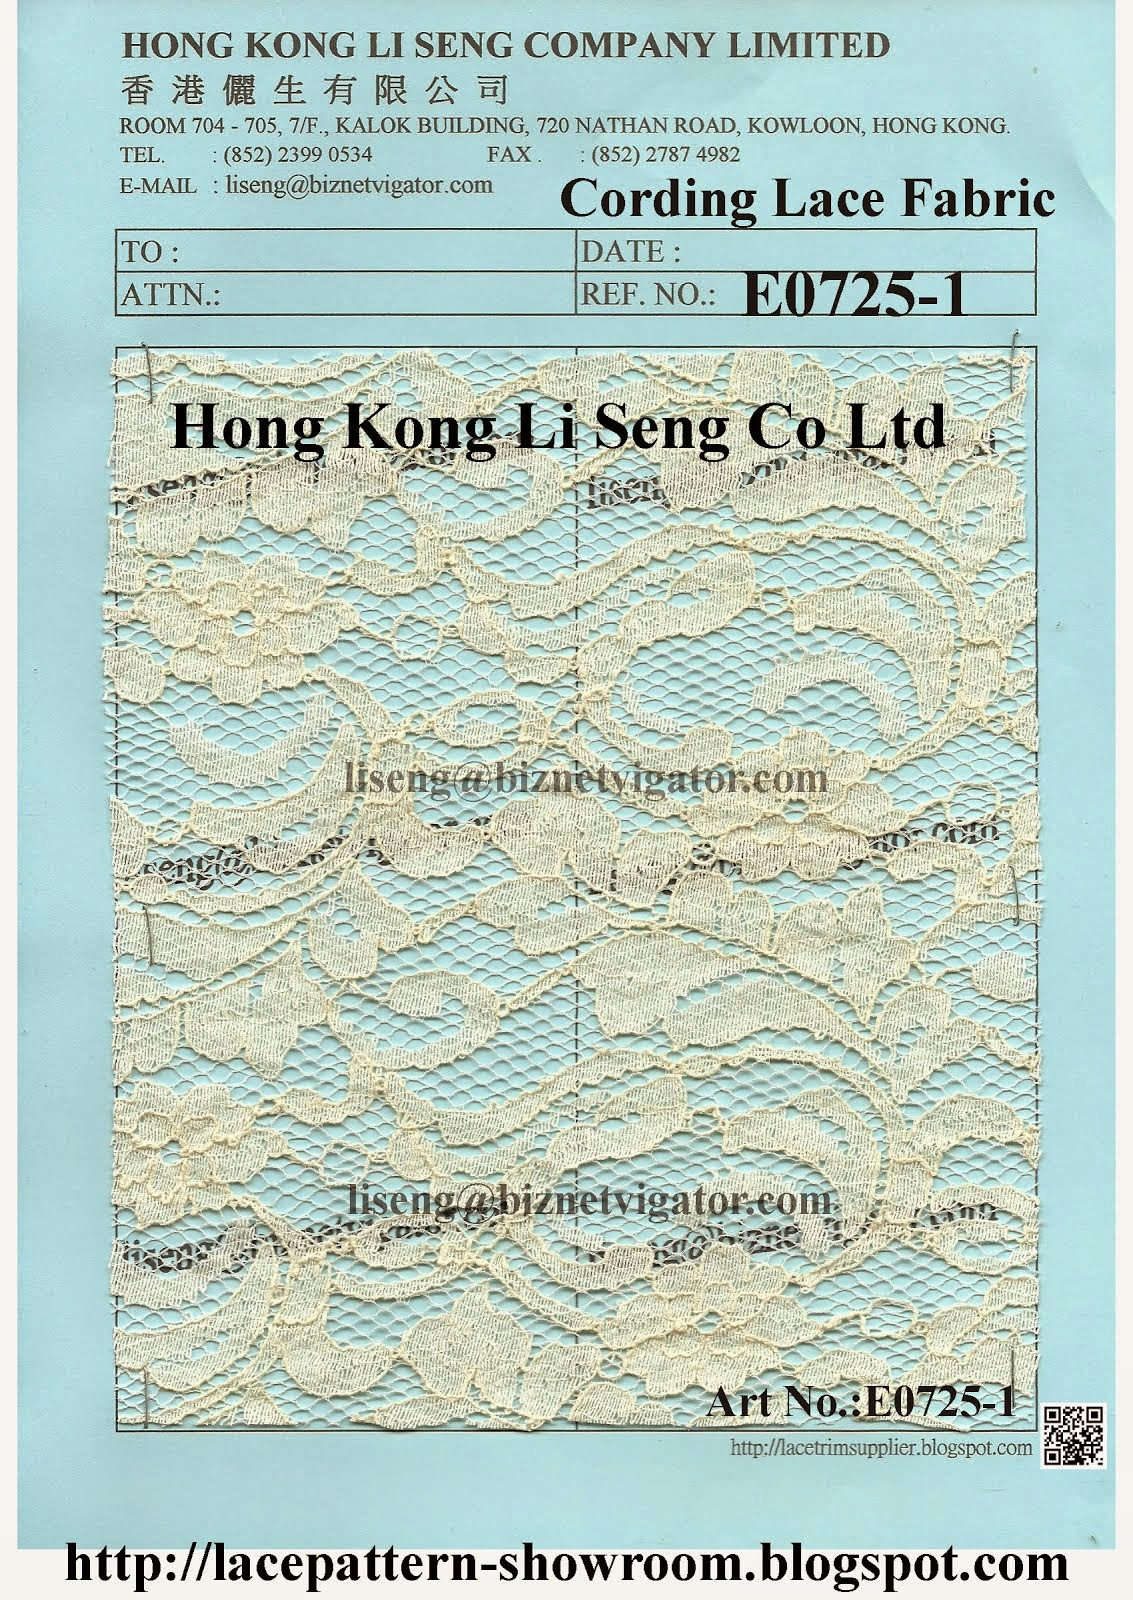 A Natural Embroidered Cotton Cording Lace Fabric Wholesale and Factory - Hong Kong Li Seng Co Ltd